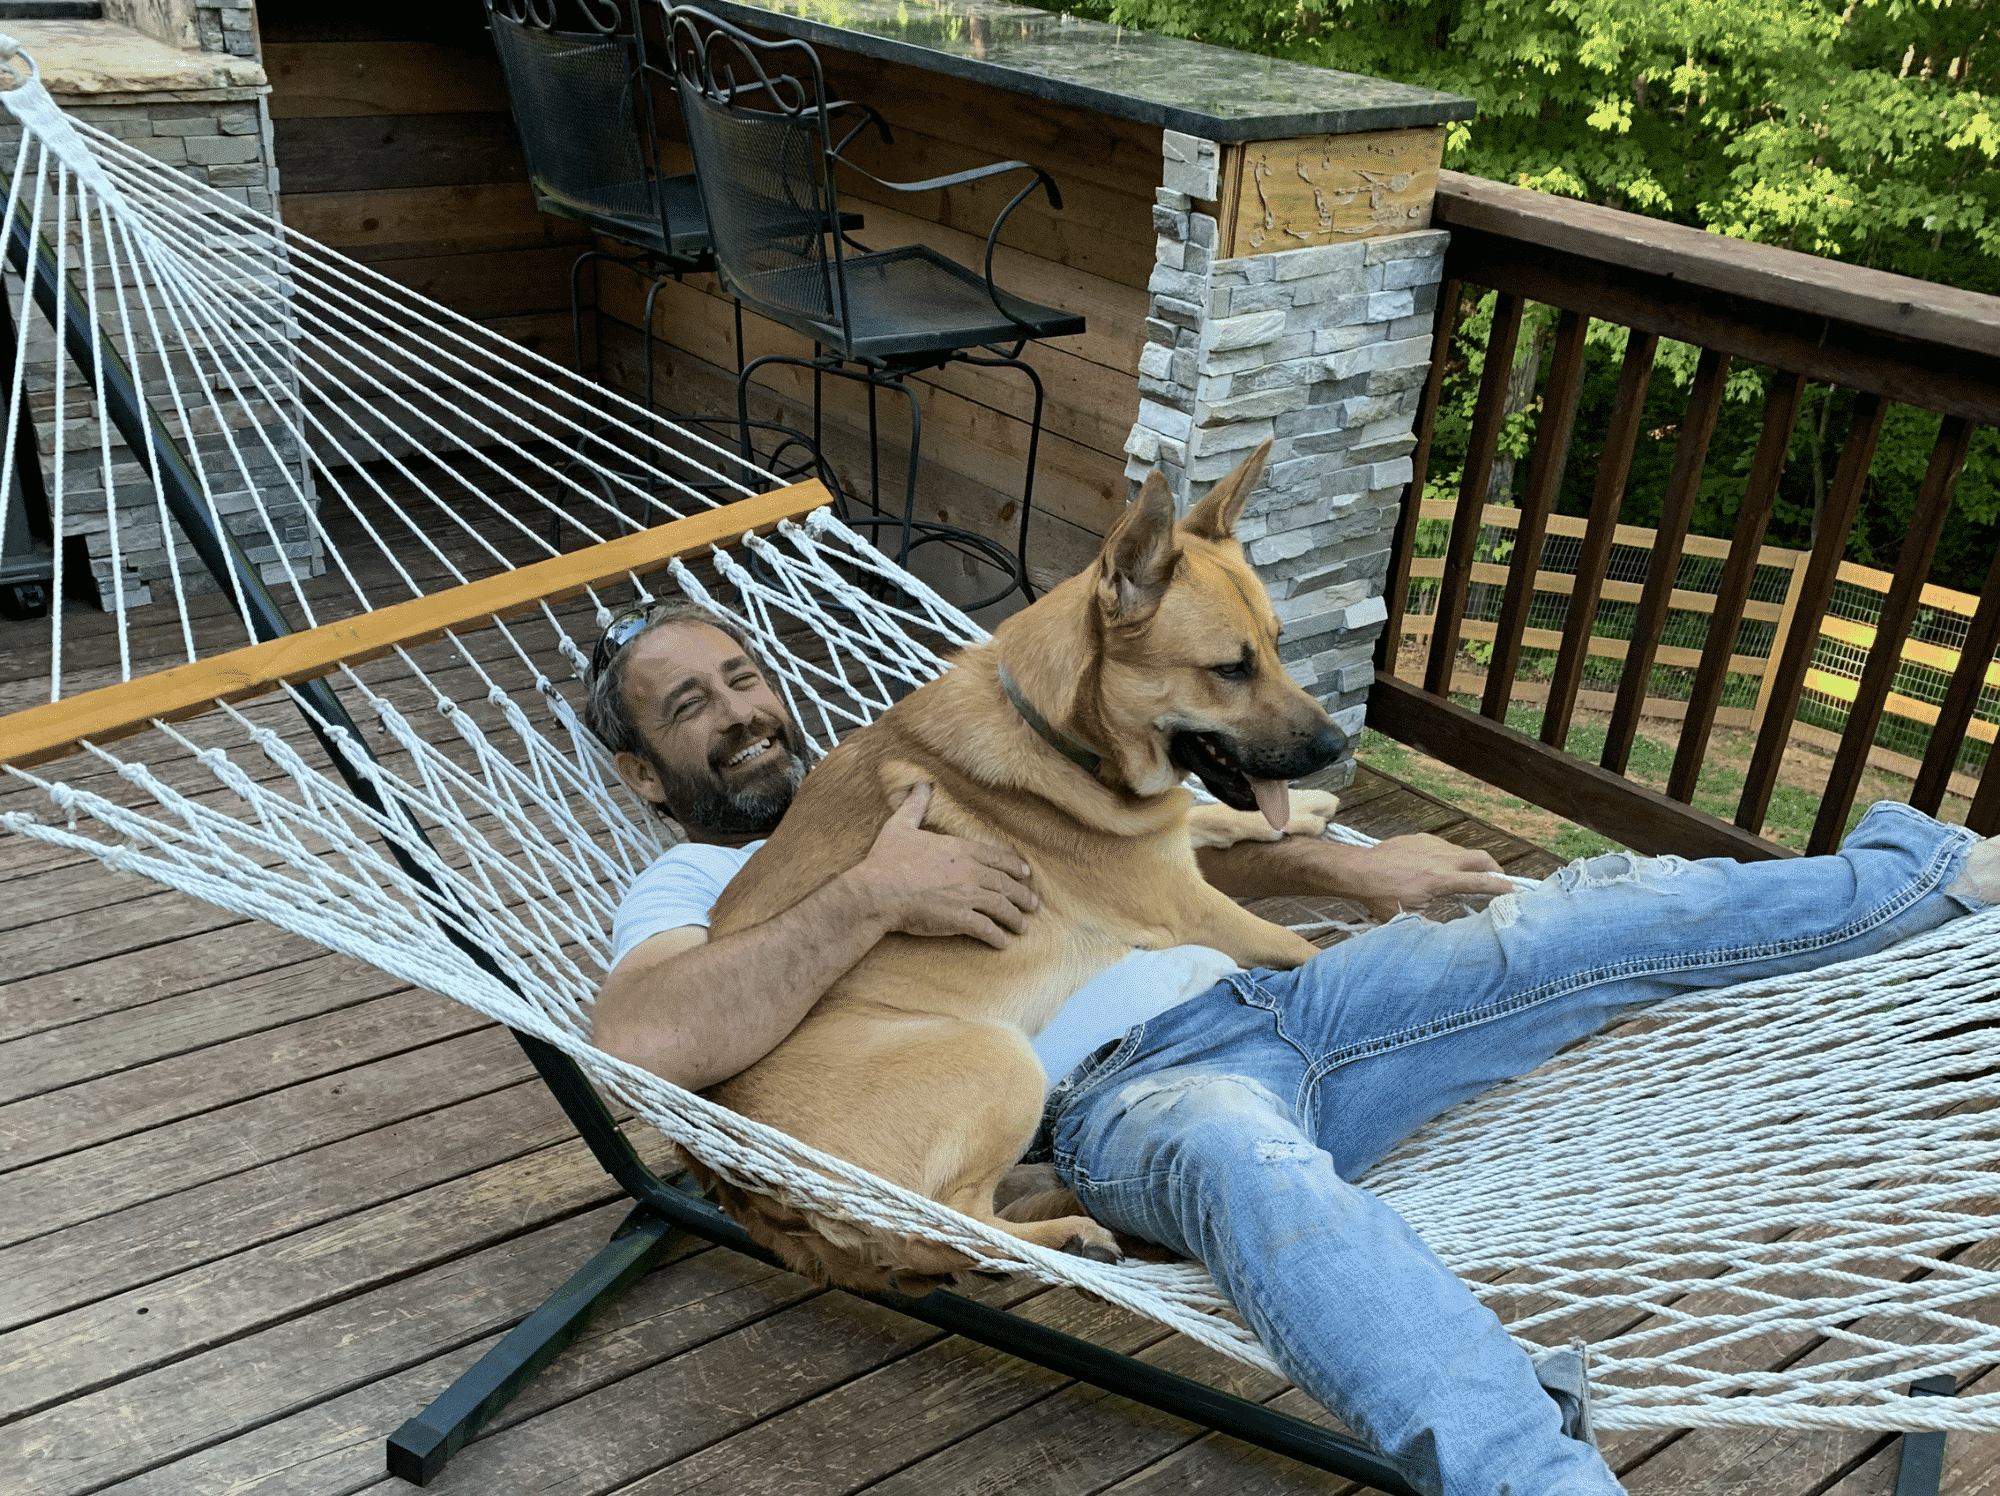 Mike and his dog